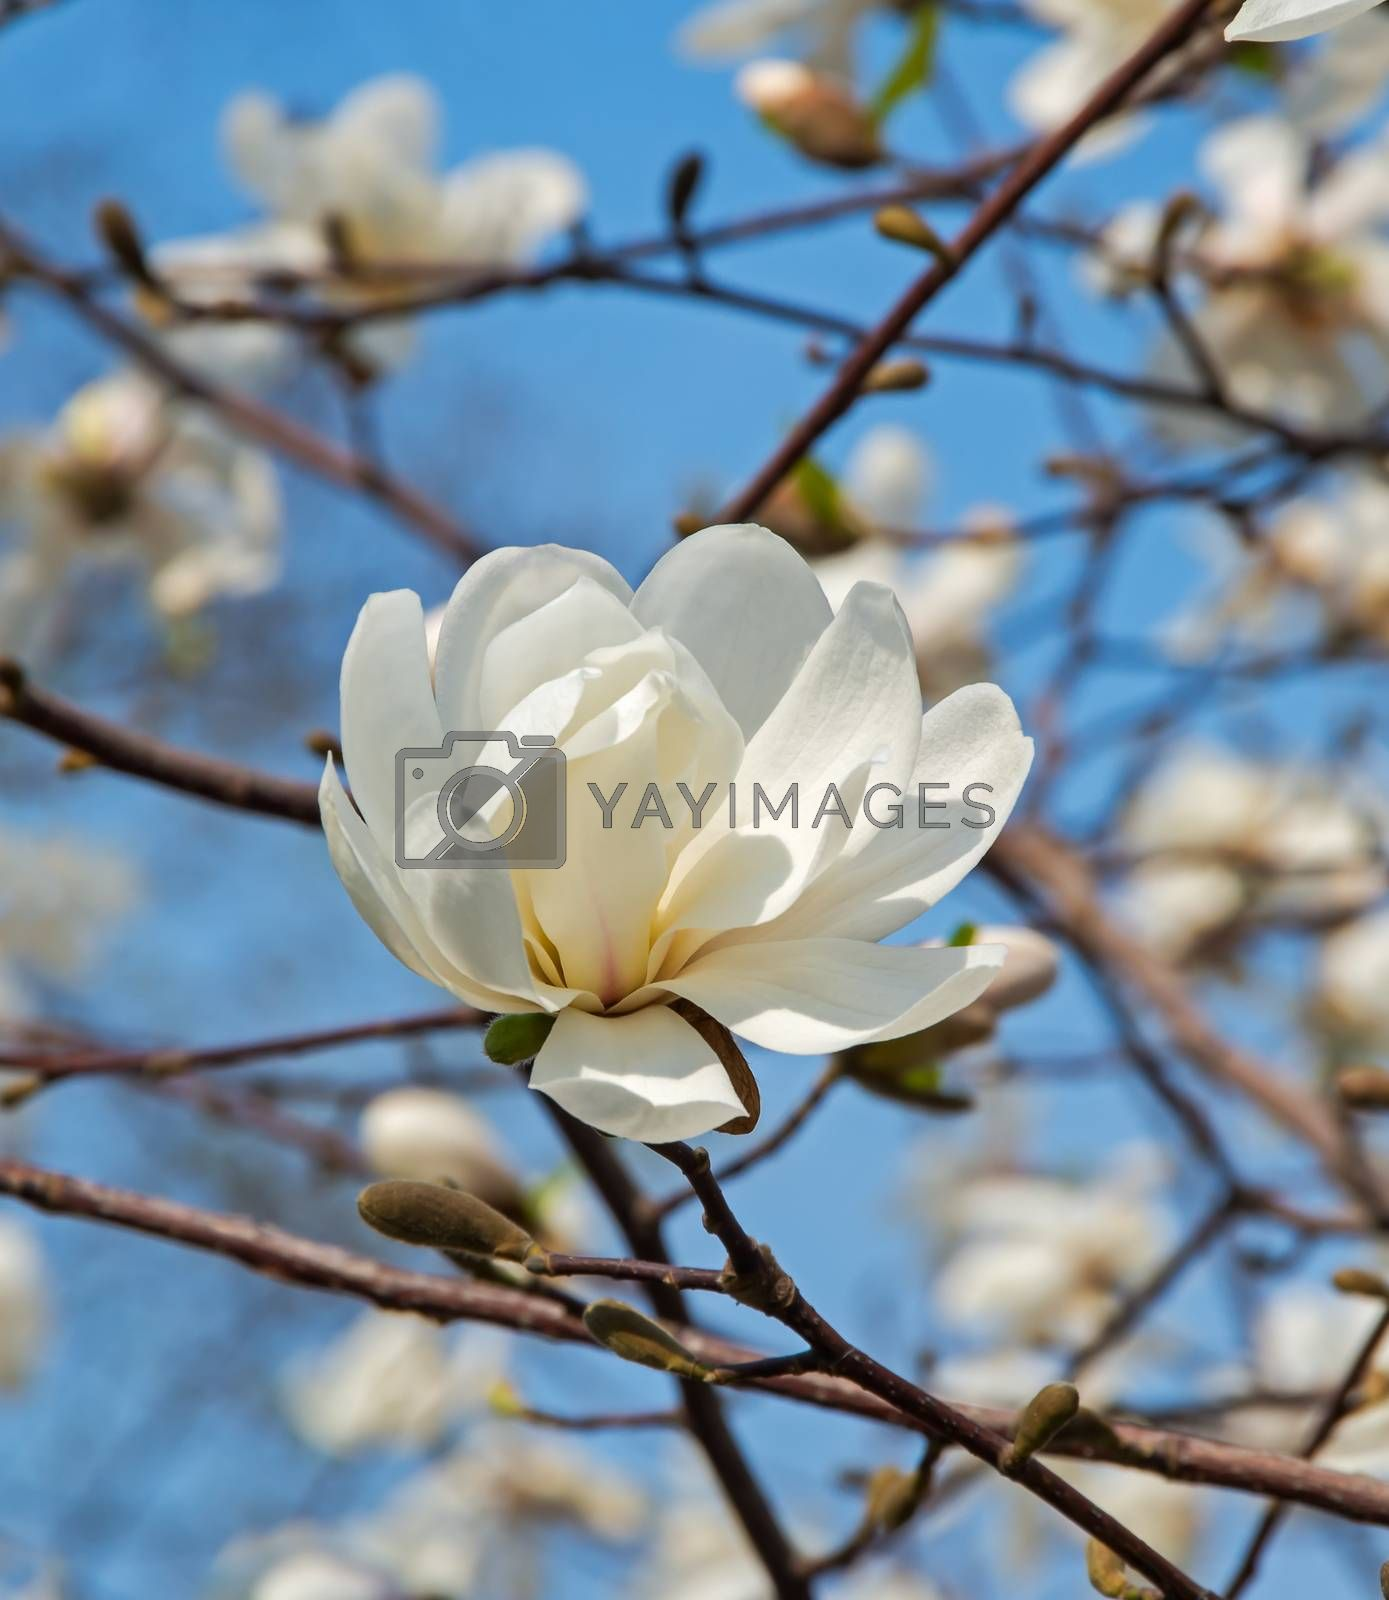 Flowering white magnolia in early spring in city park